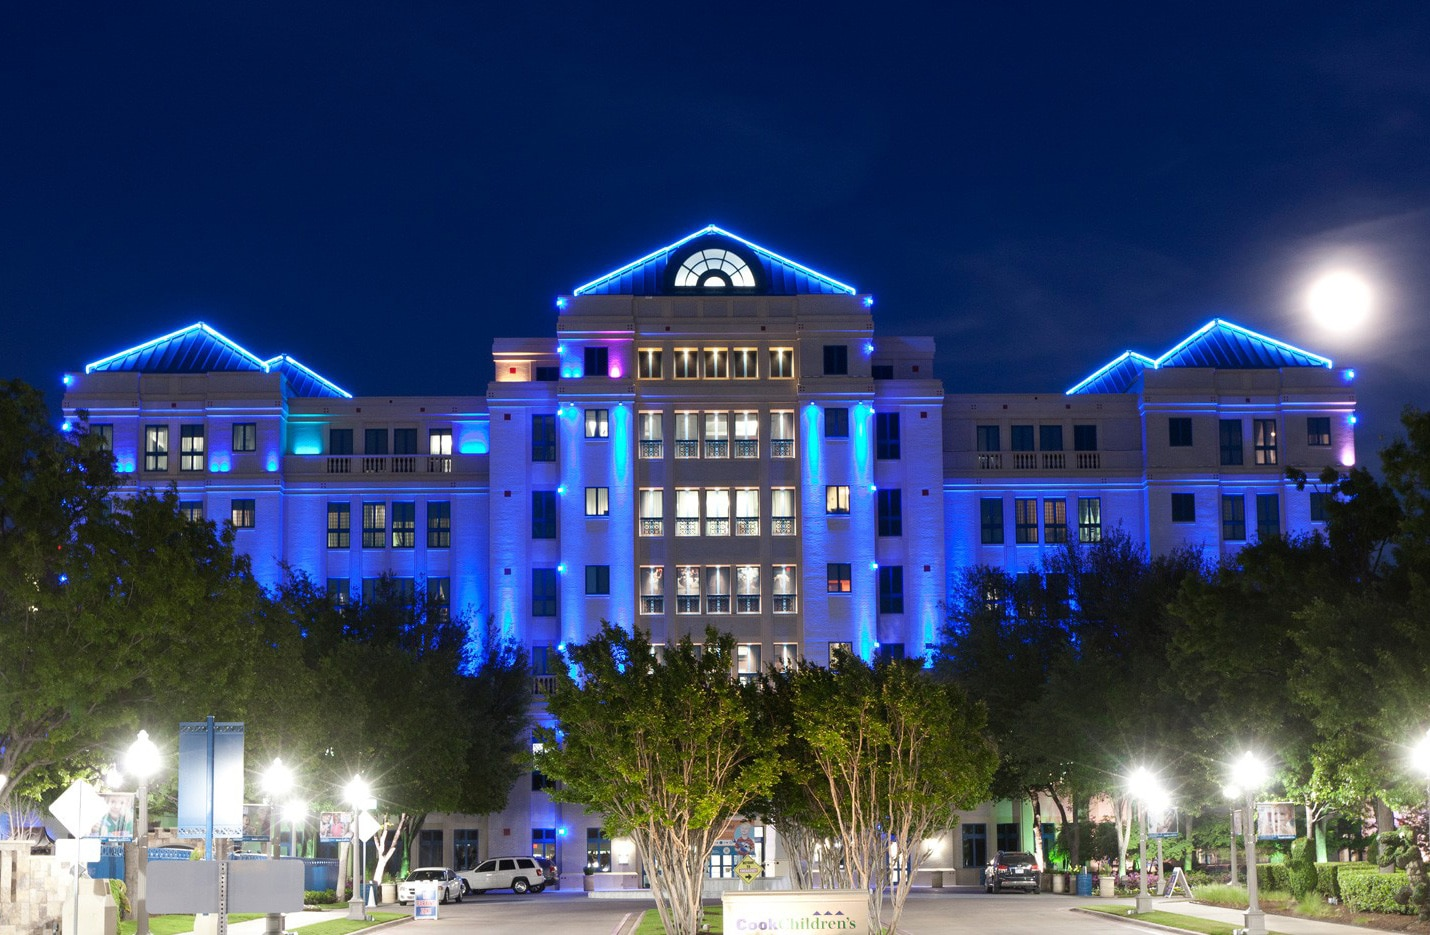 The Cook Children's Medical Center lit up at night